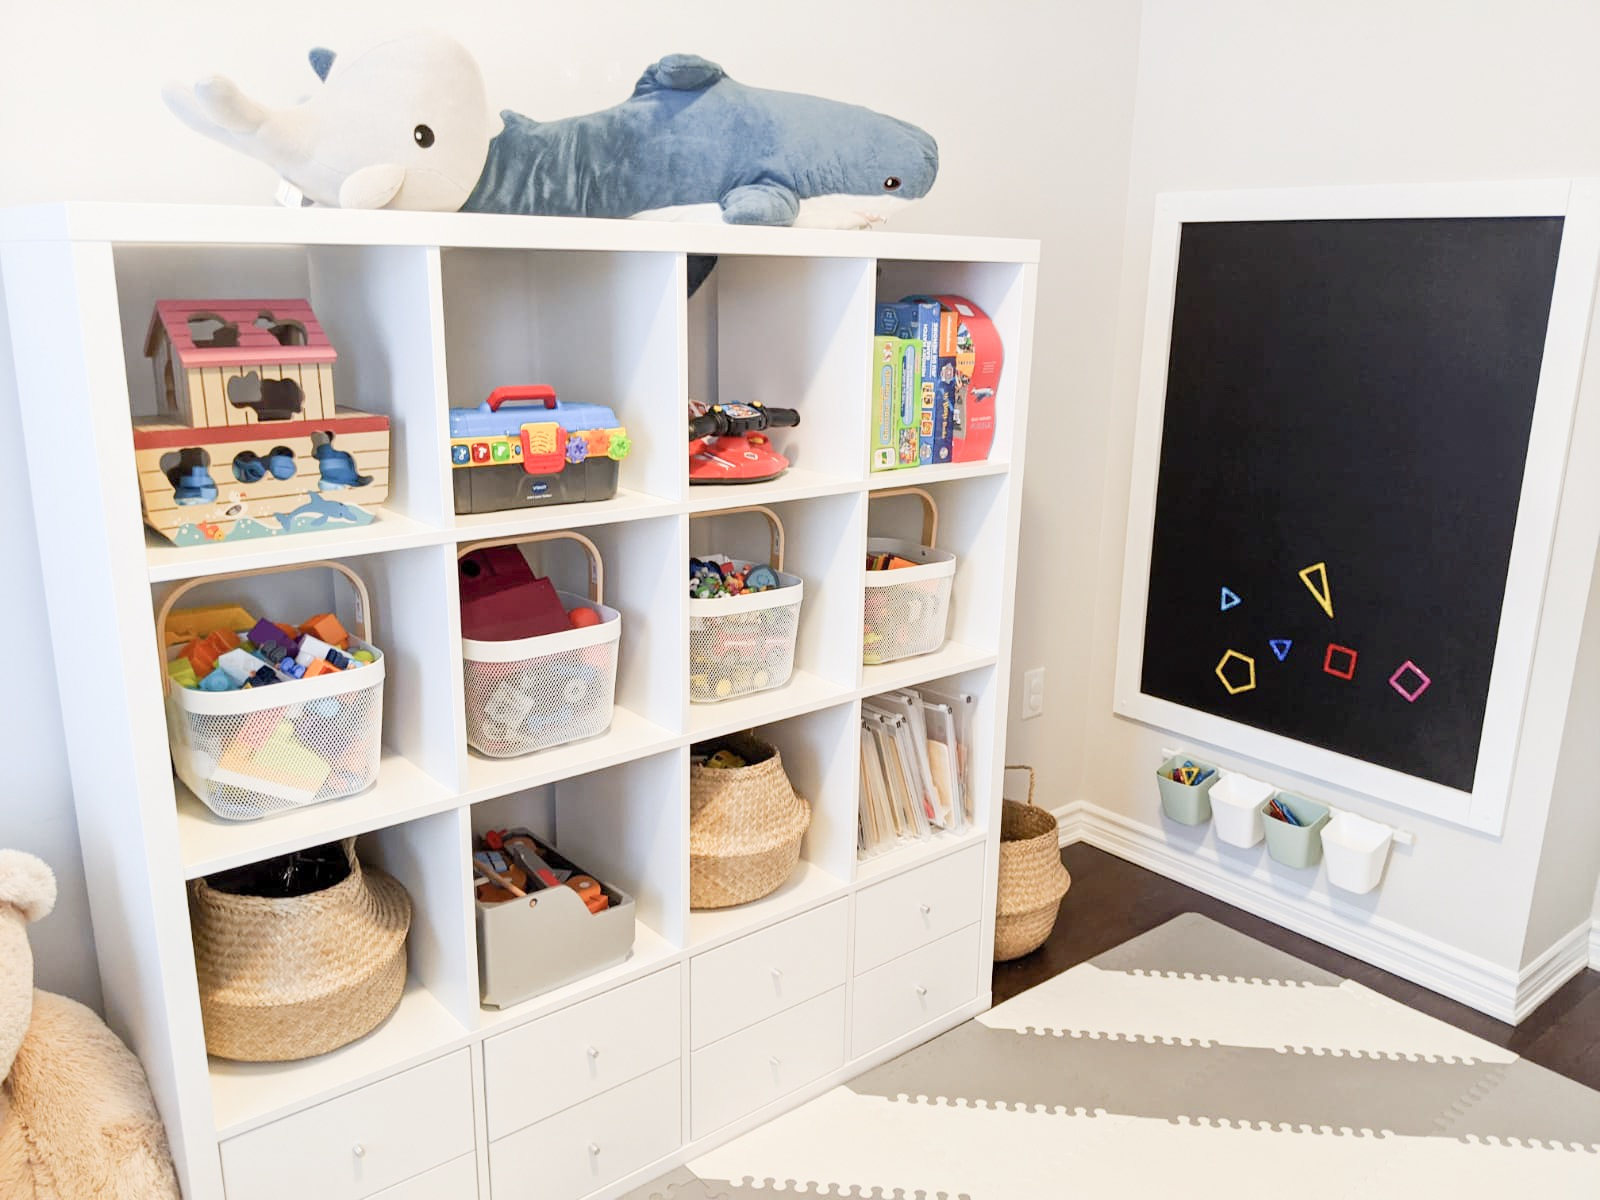 B & L playroom 4